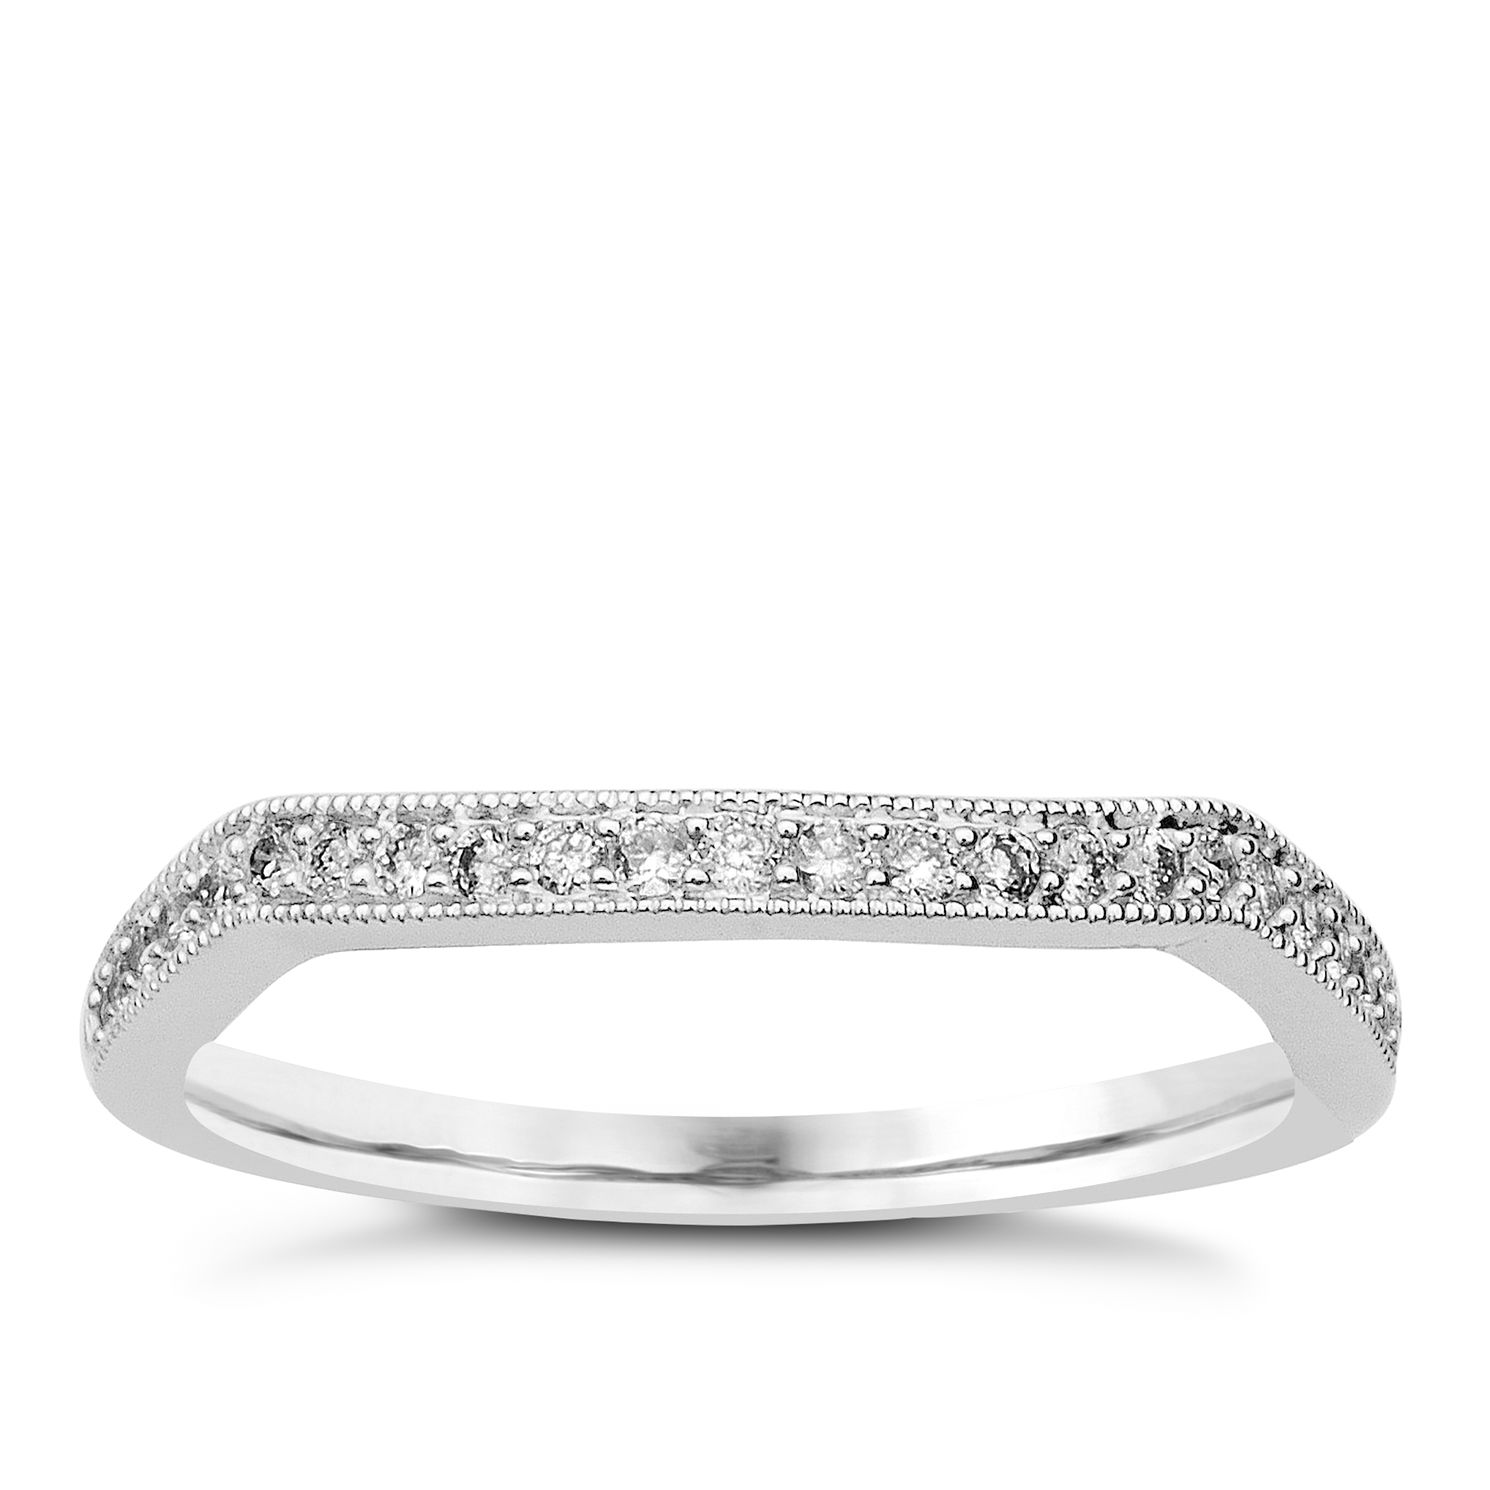 Perfect Fit 18ct White Gold & Diamond Eternity Ring - Product number 9983155